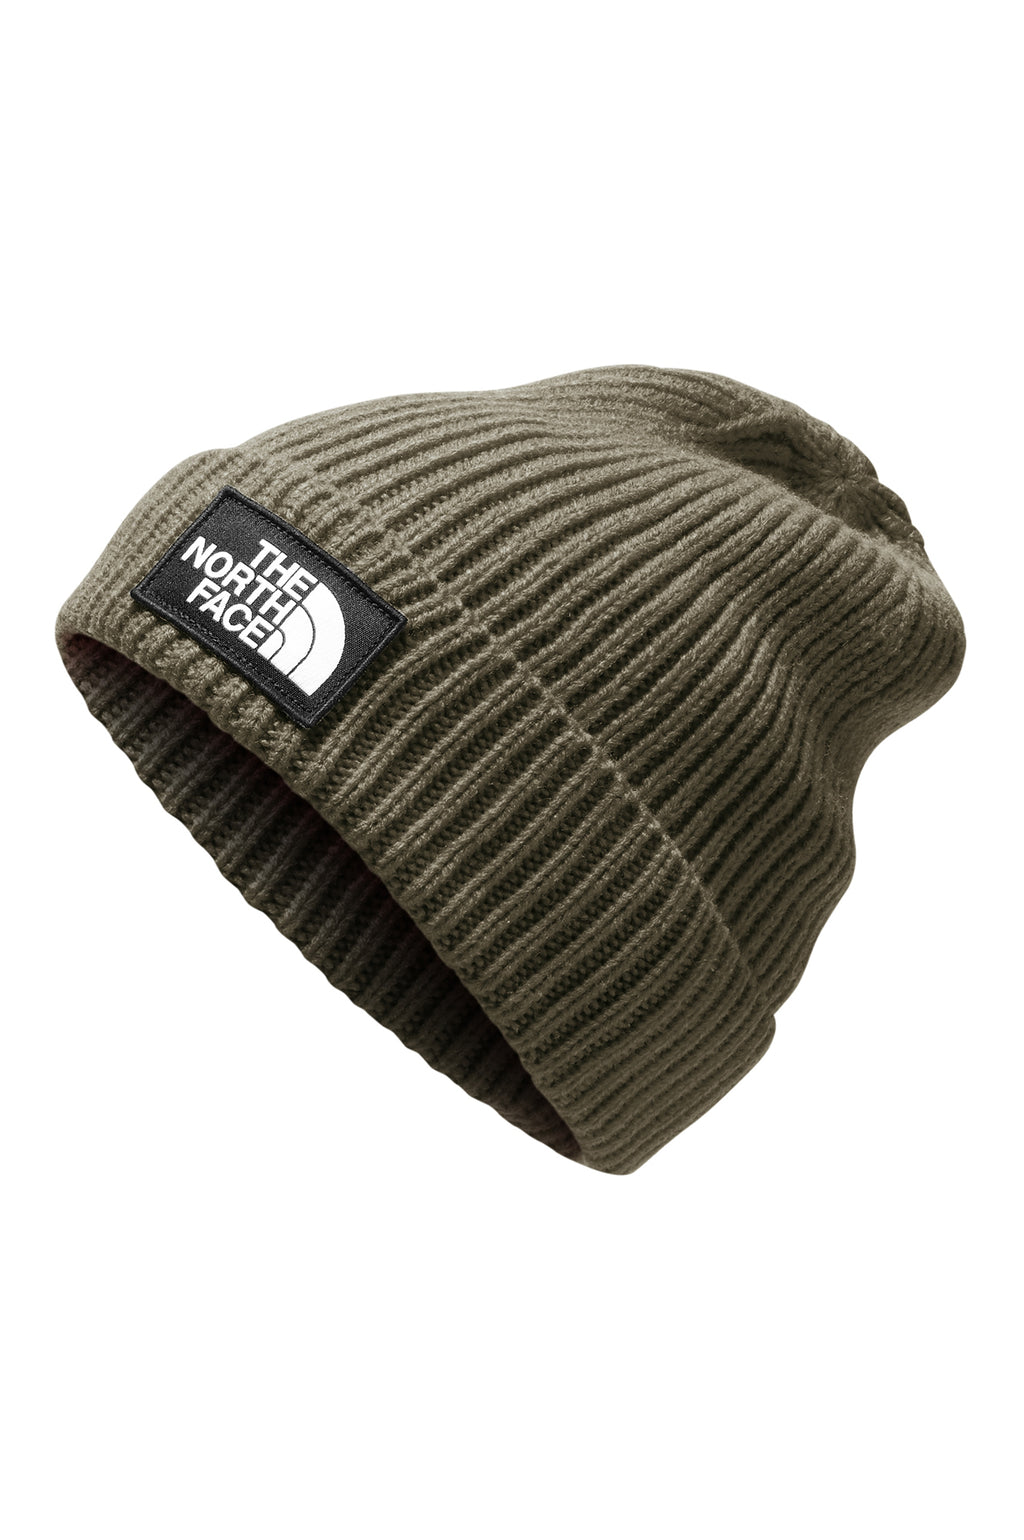 The North Face Accs Logo Boxed Cuffed Beanie